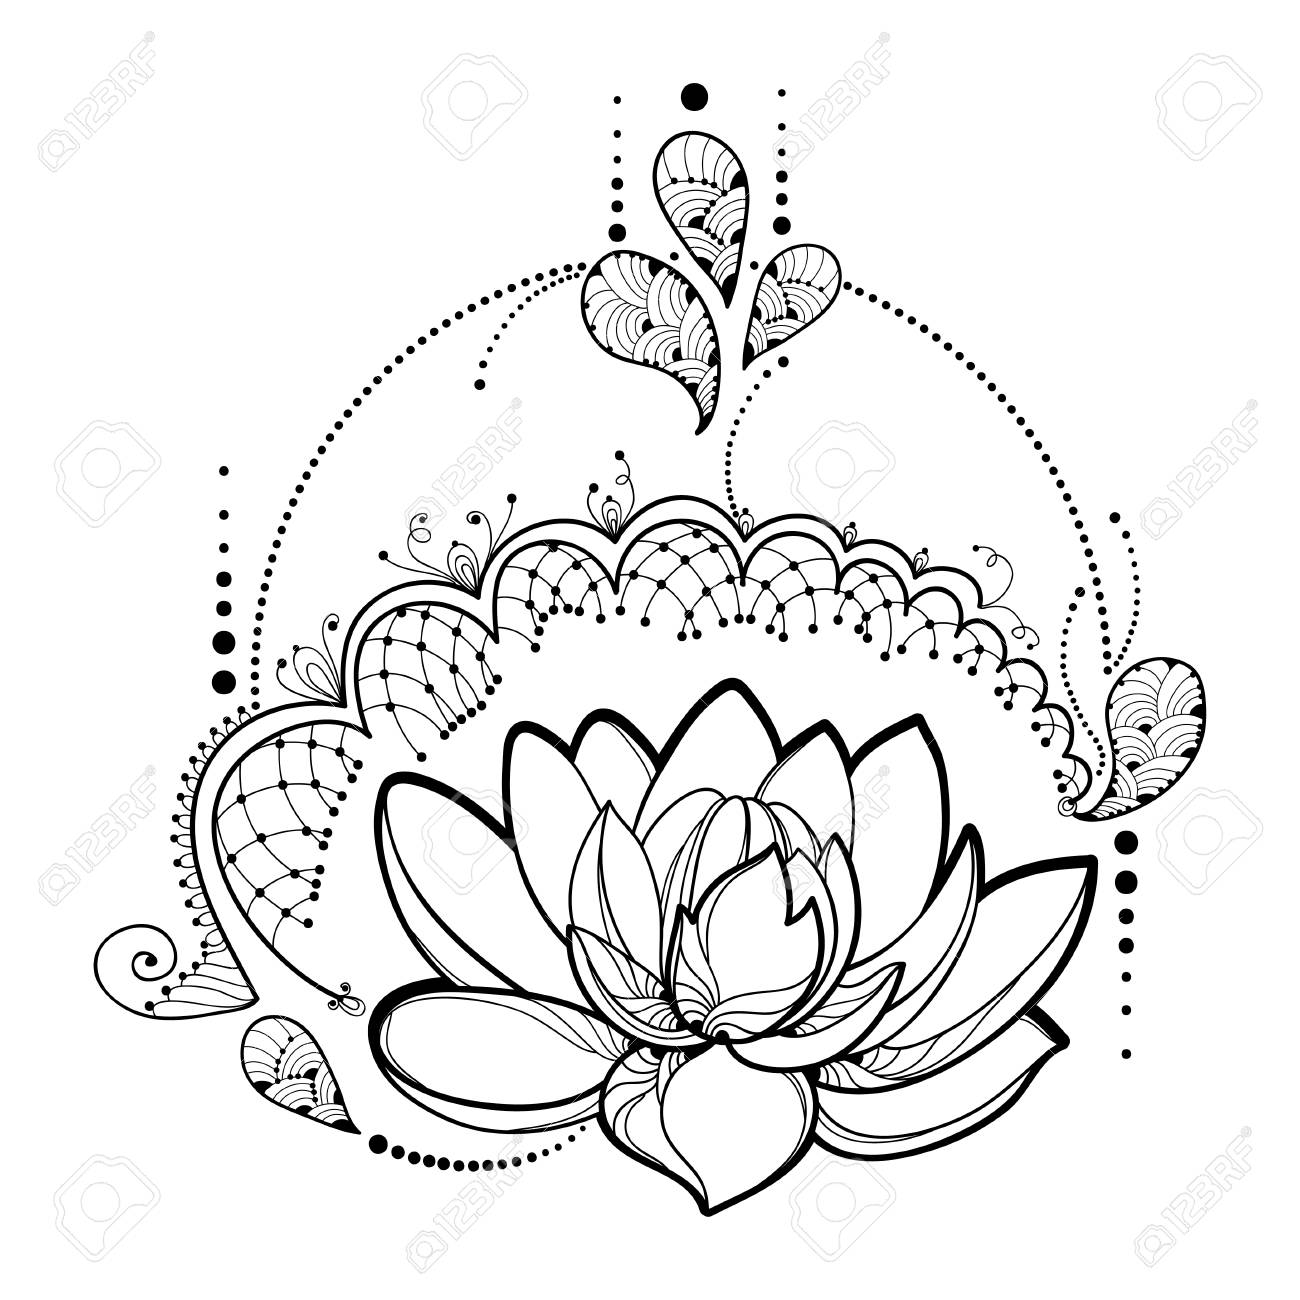 Drawing With Outline Lotus Flower Decorative Lace And Swirls In Black Isolated On White Background